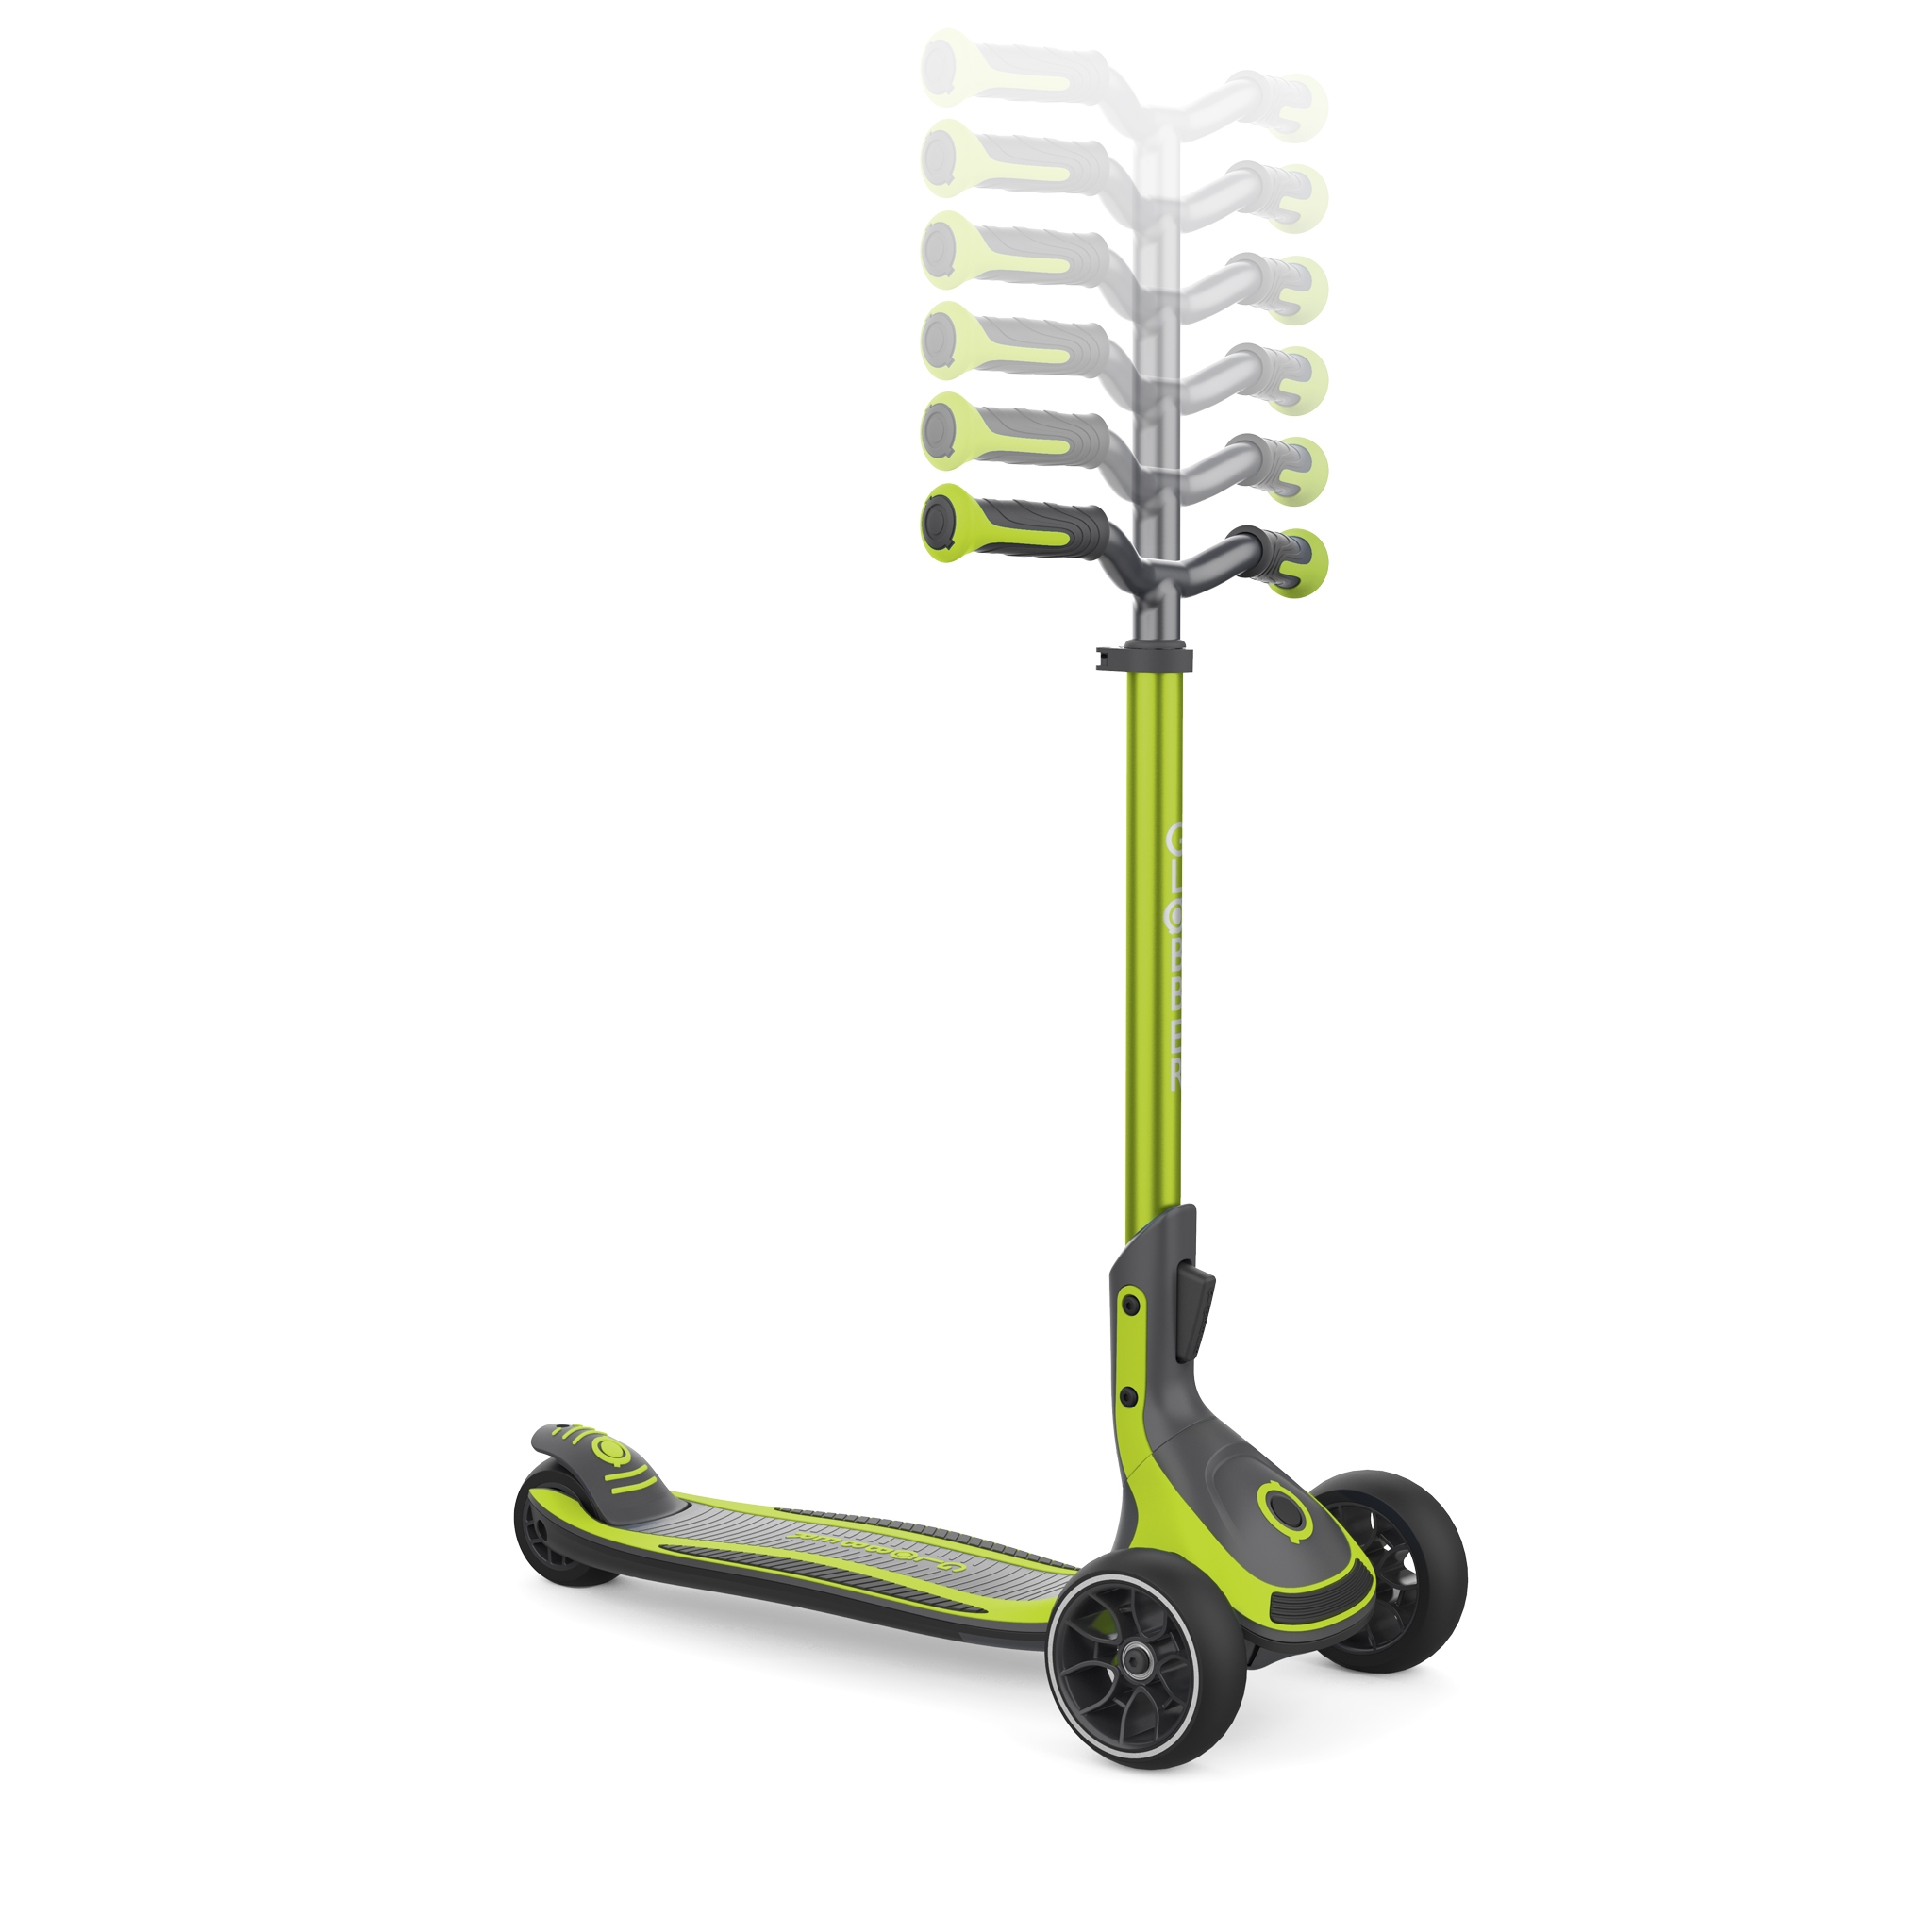 3 wheel foldable scooter for kids, teens and adults - Globber ULTIMUM 2